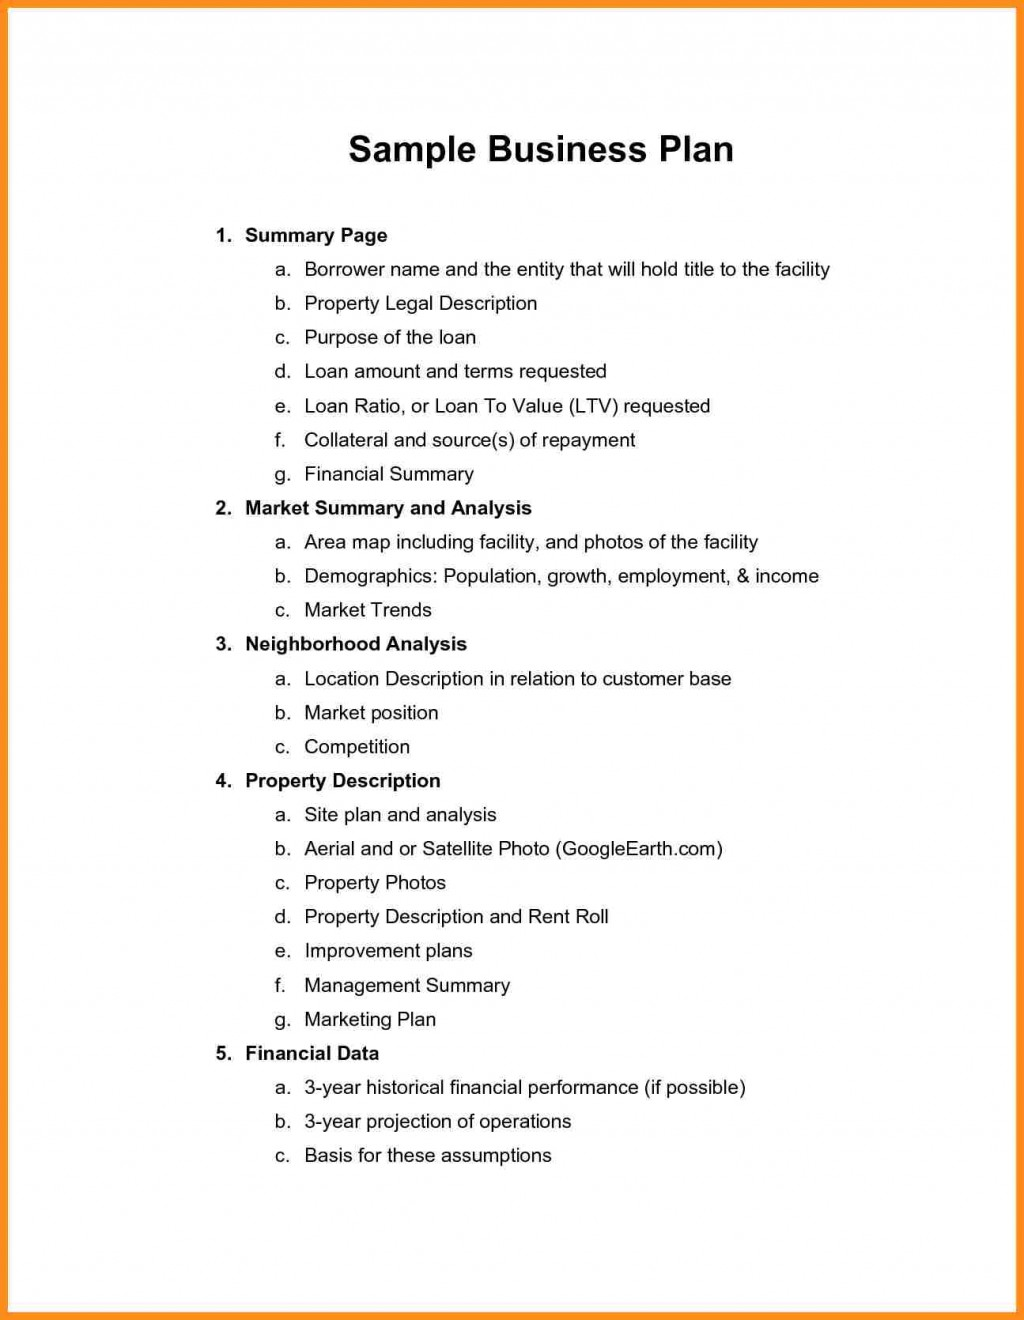 021 Research Paper Parts Of And Its Definition Pdf Business Plan Examples Free Resume Sba Template W Introduction Presentation Explained Executive Summary Staggering A Large